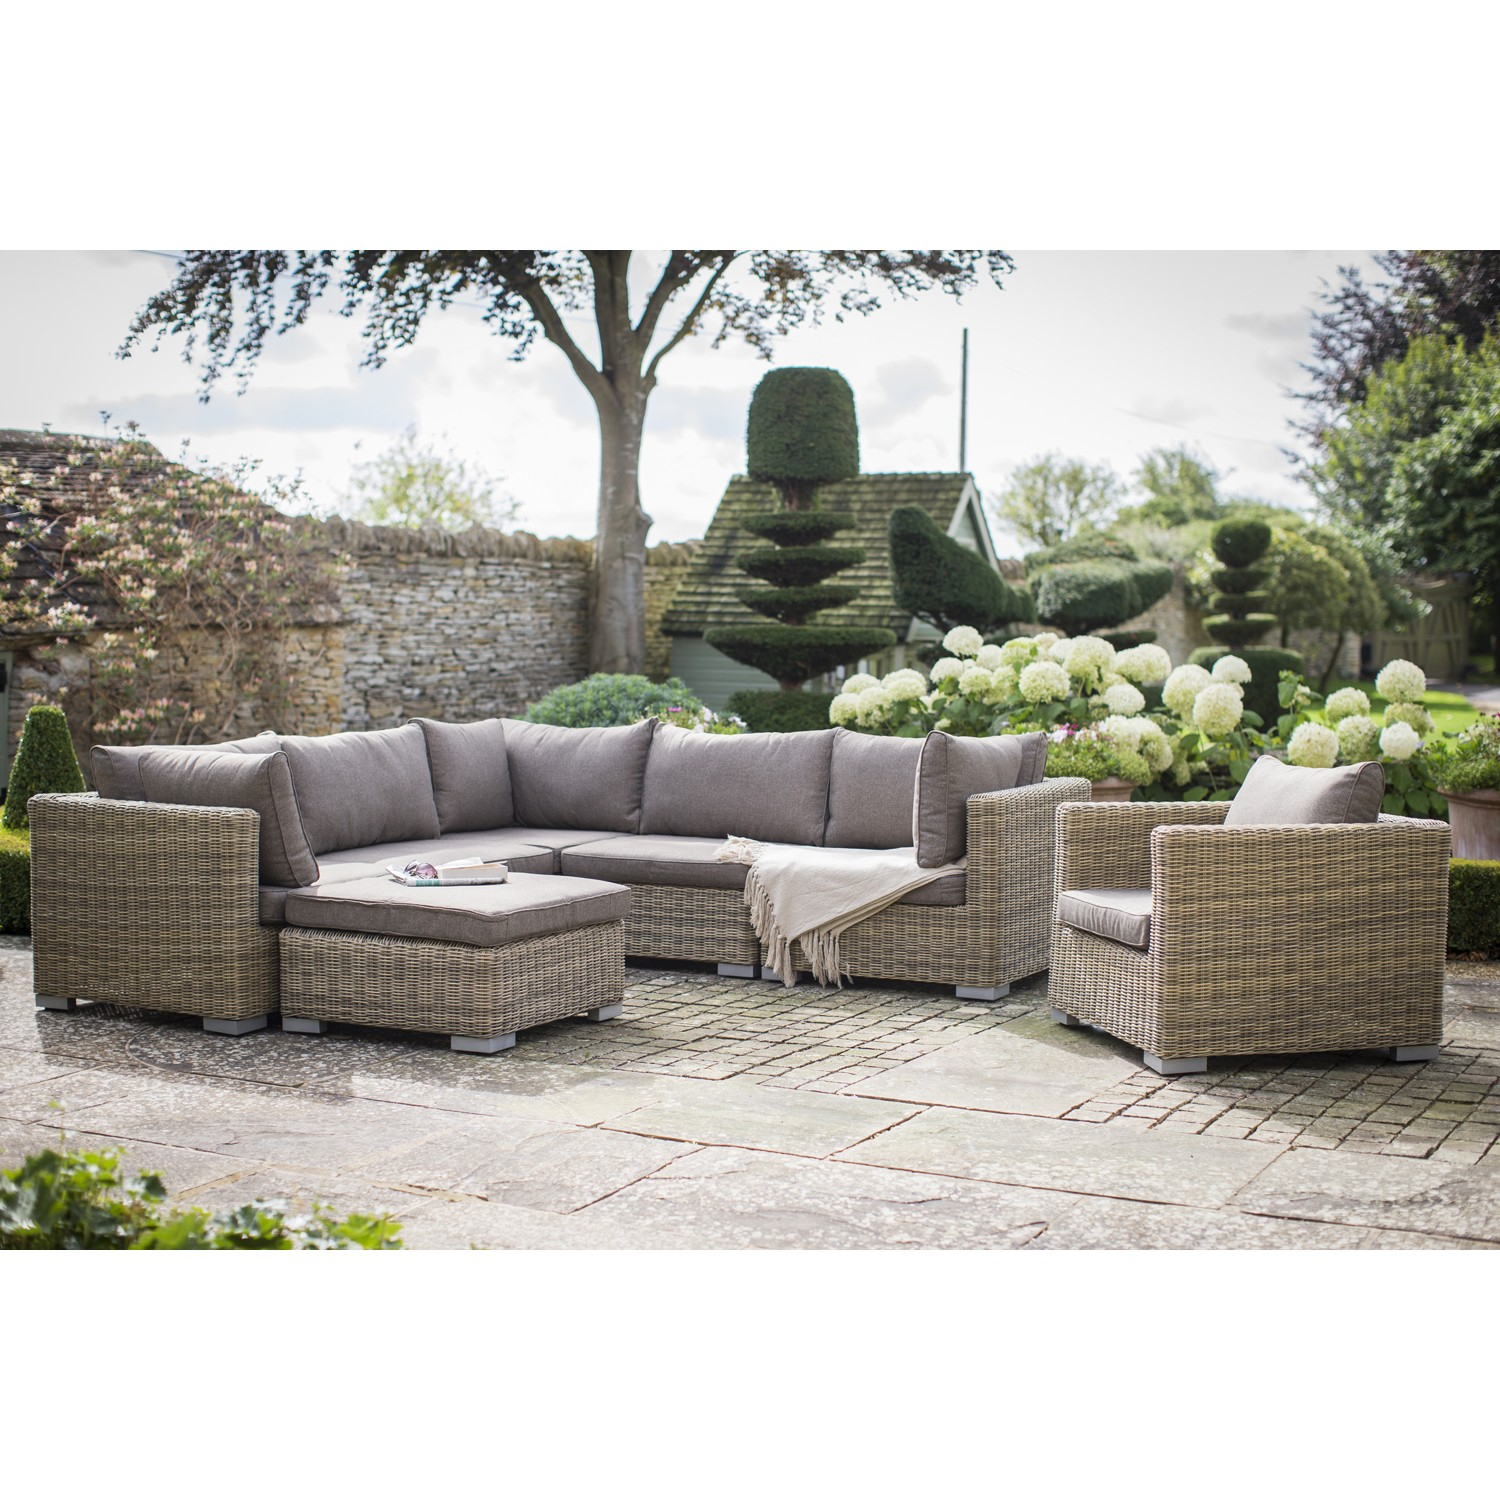 Garden Trading Marden Outdoor Corner Sofa Set, Natural Rattan throughout Natural Cane Media Console Tables (Image 12 of 30)